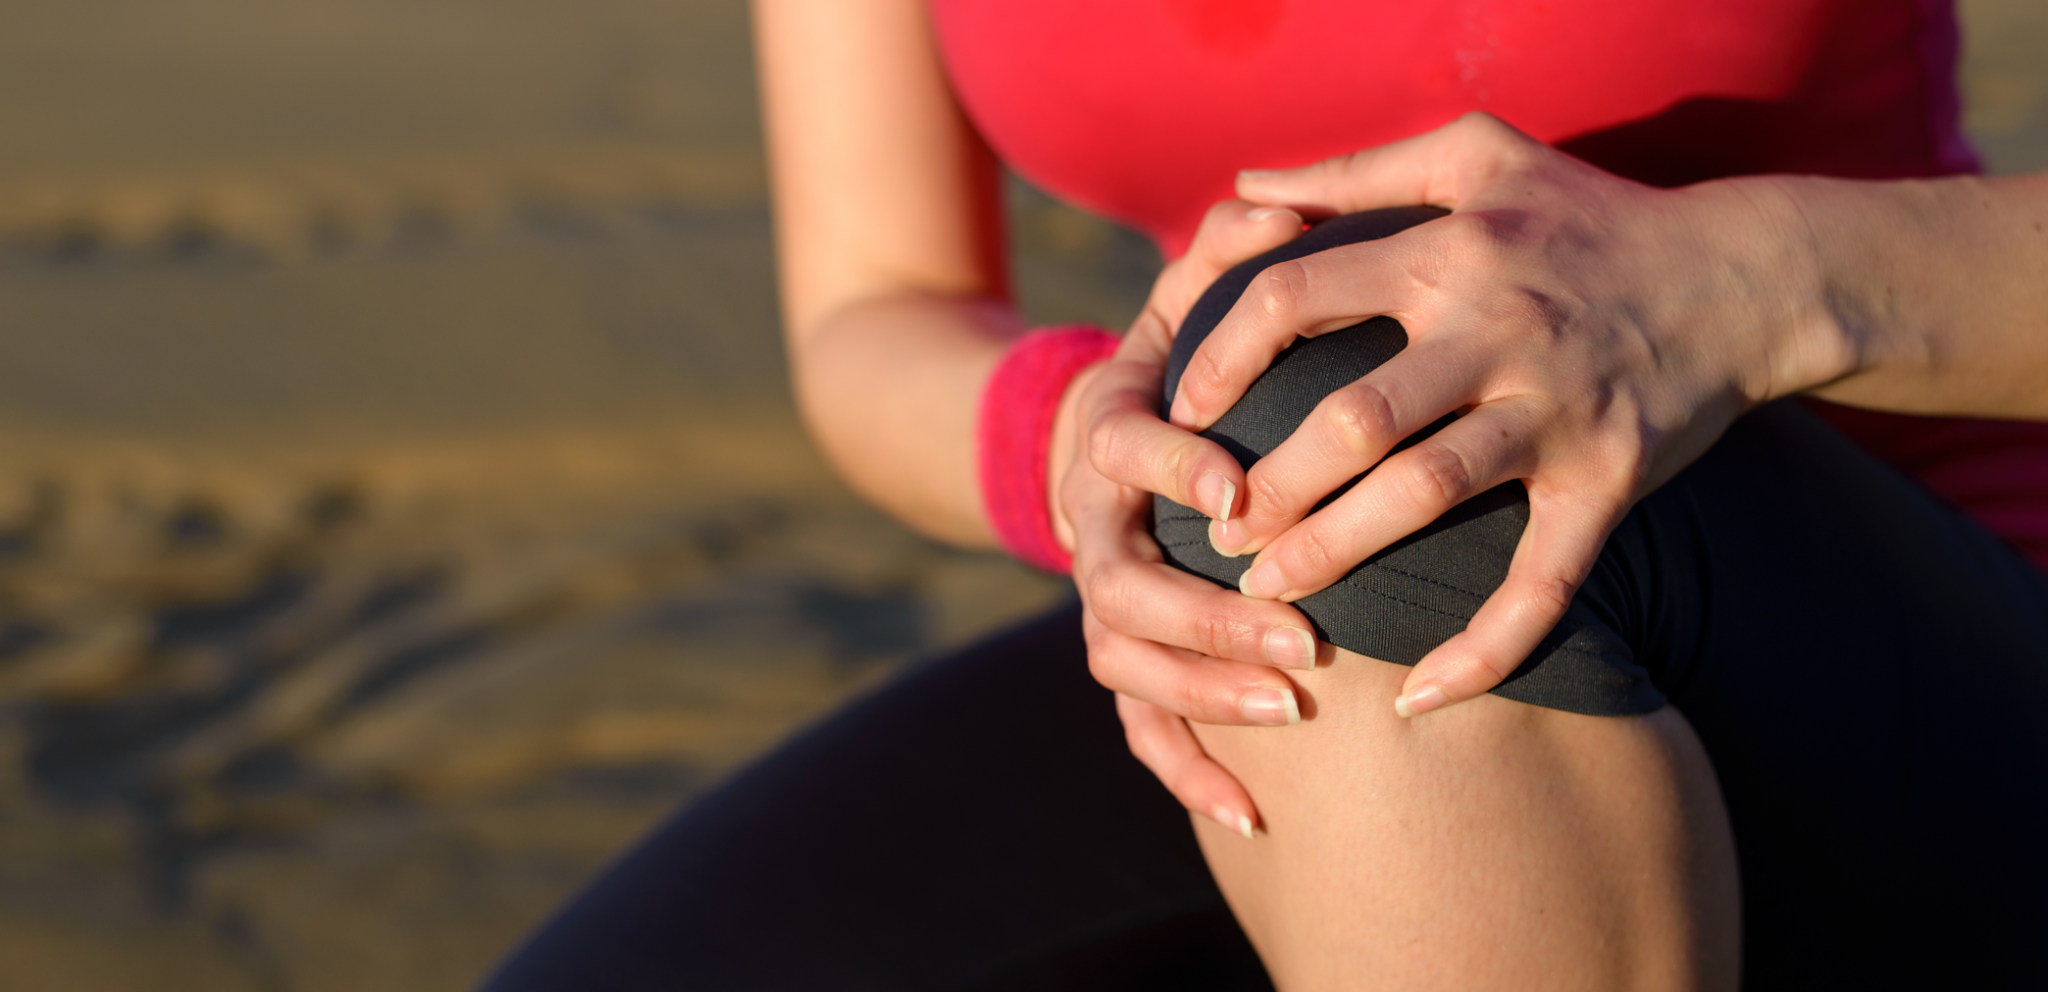 Can Stem Cell Therapy Reduce Joint Pain?